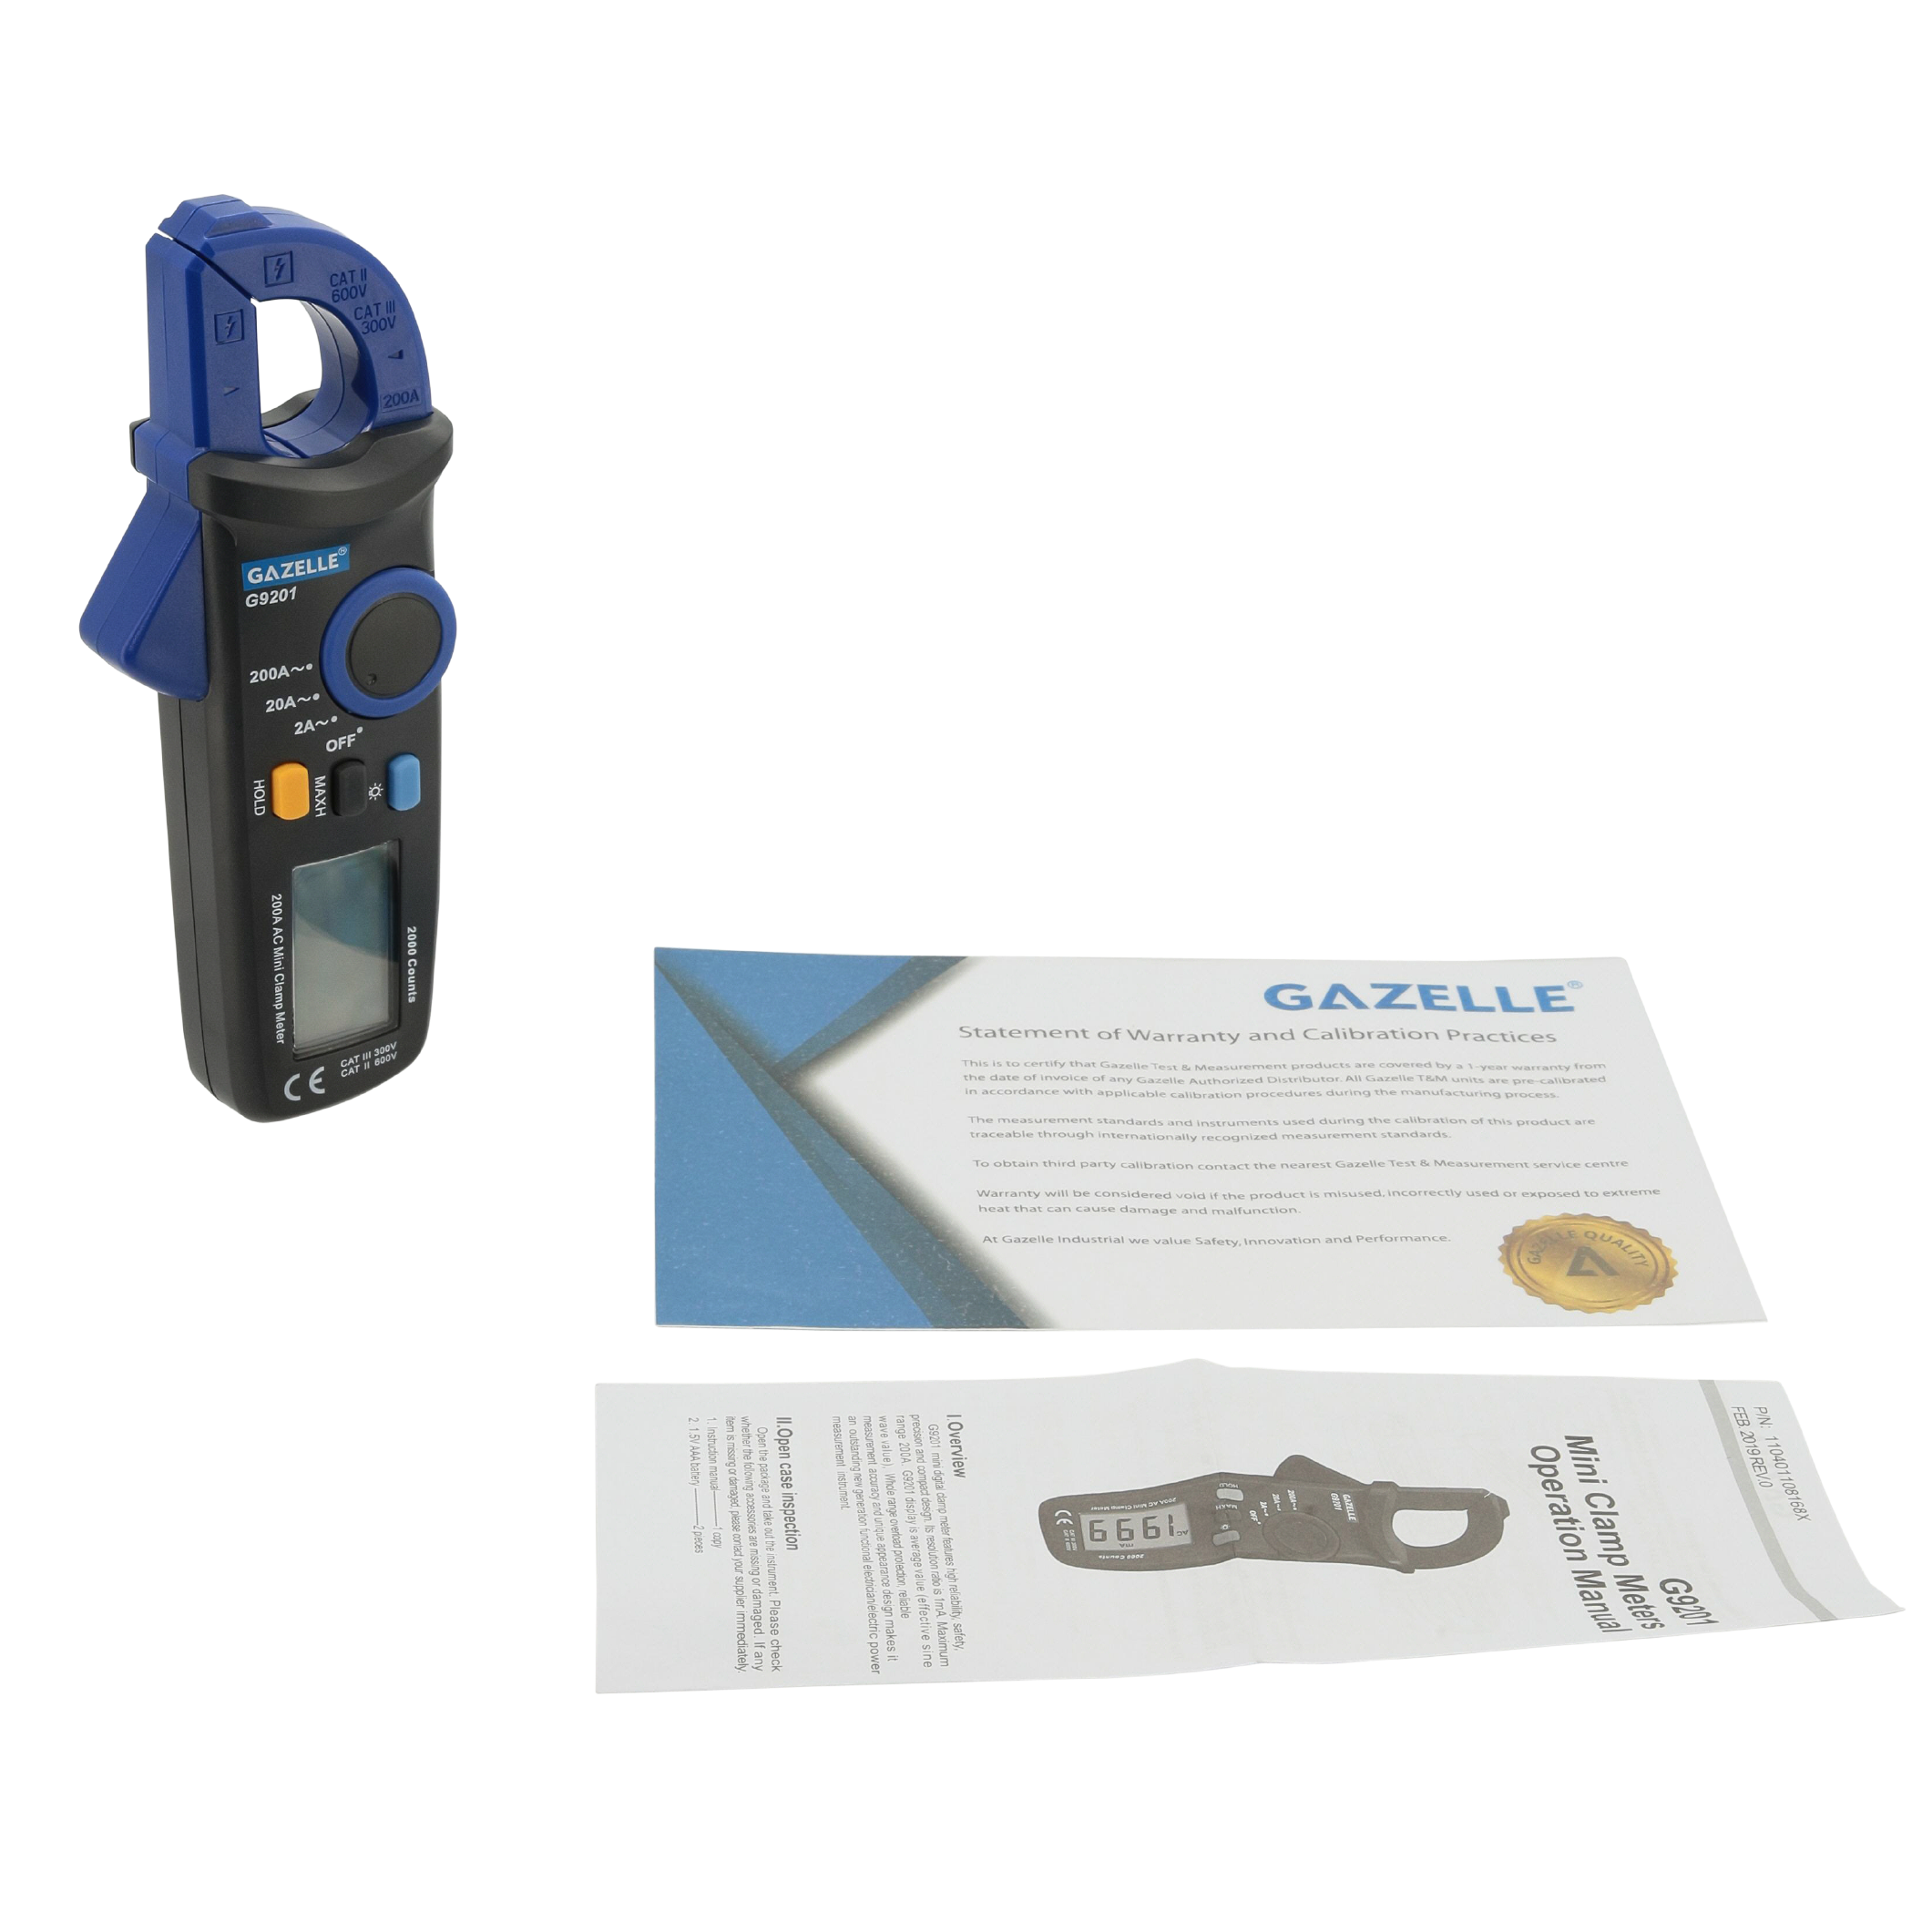 GAZELLE G9201 - Mini Clamp Meter 200A